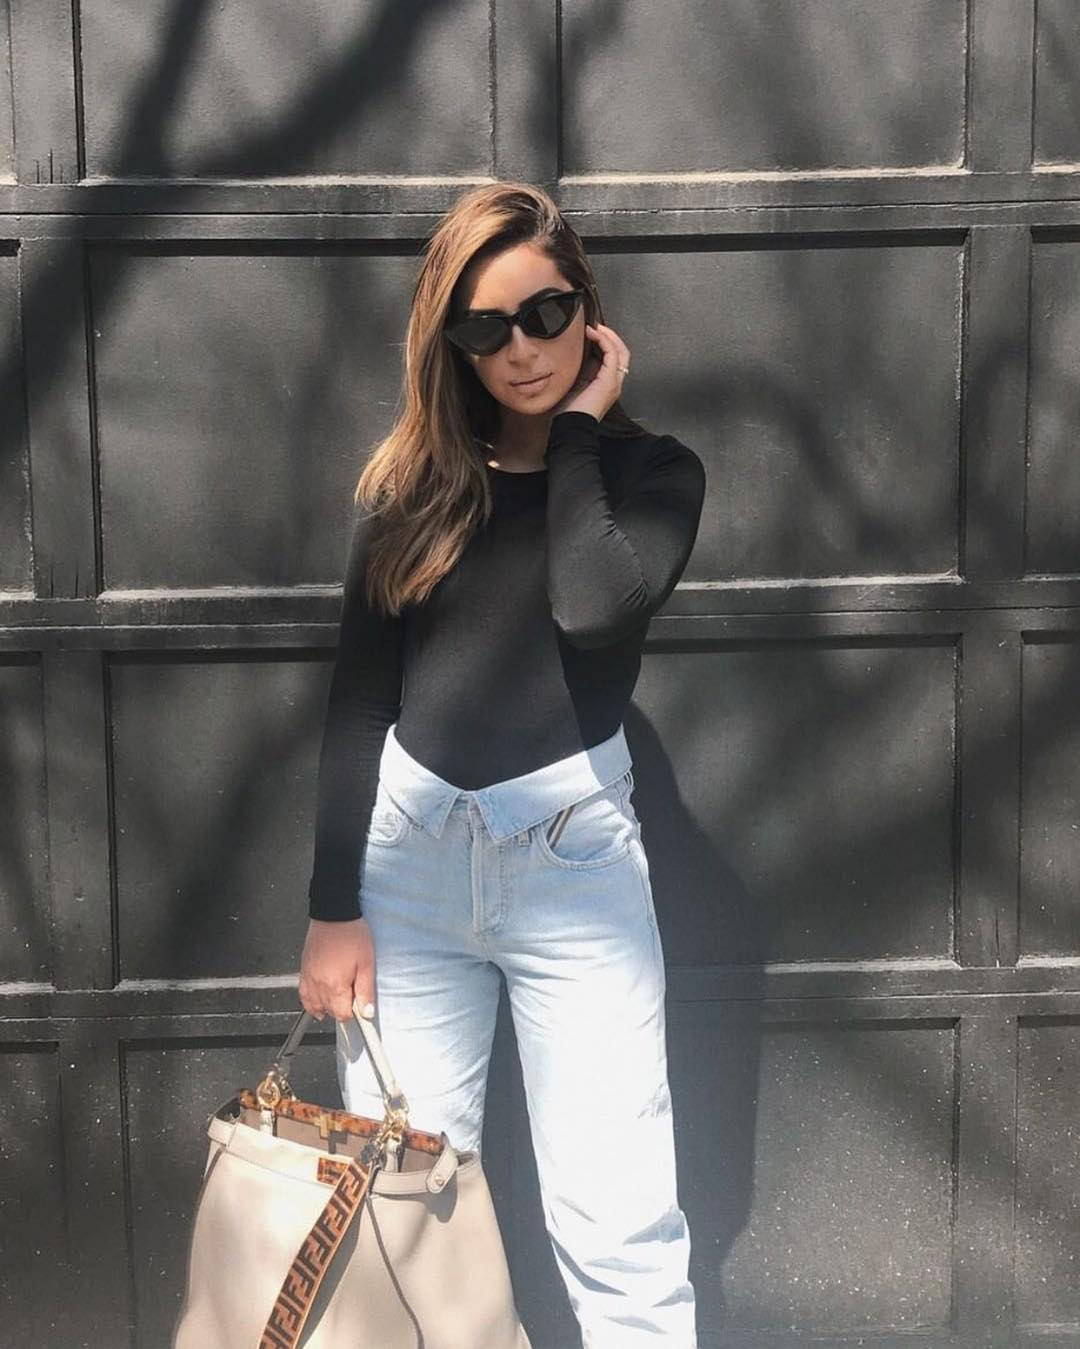 Spring Basic Outfit: Black Bodysuit And Blue Jeans 2019